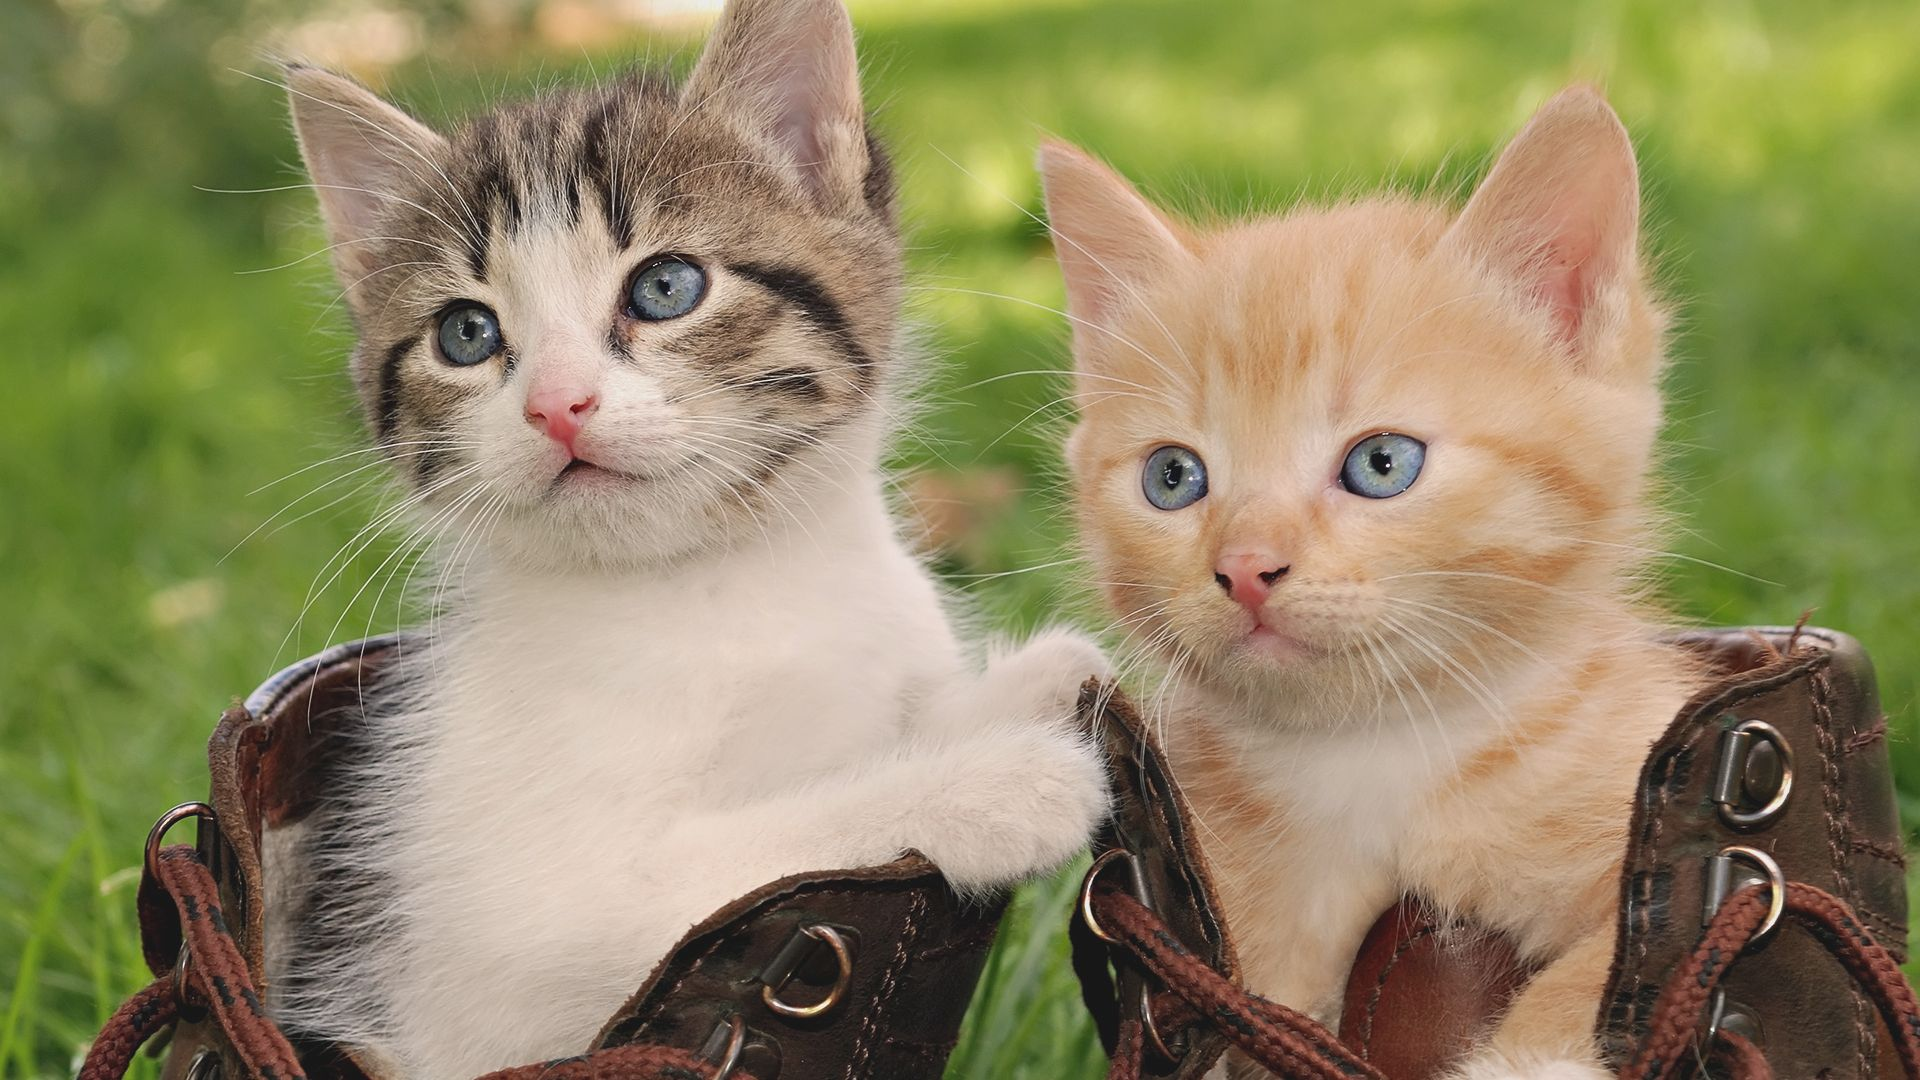 Cute Mother Cat And Baby Cat Wallpaper Downloads Beautiful 1920x1080